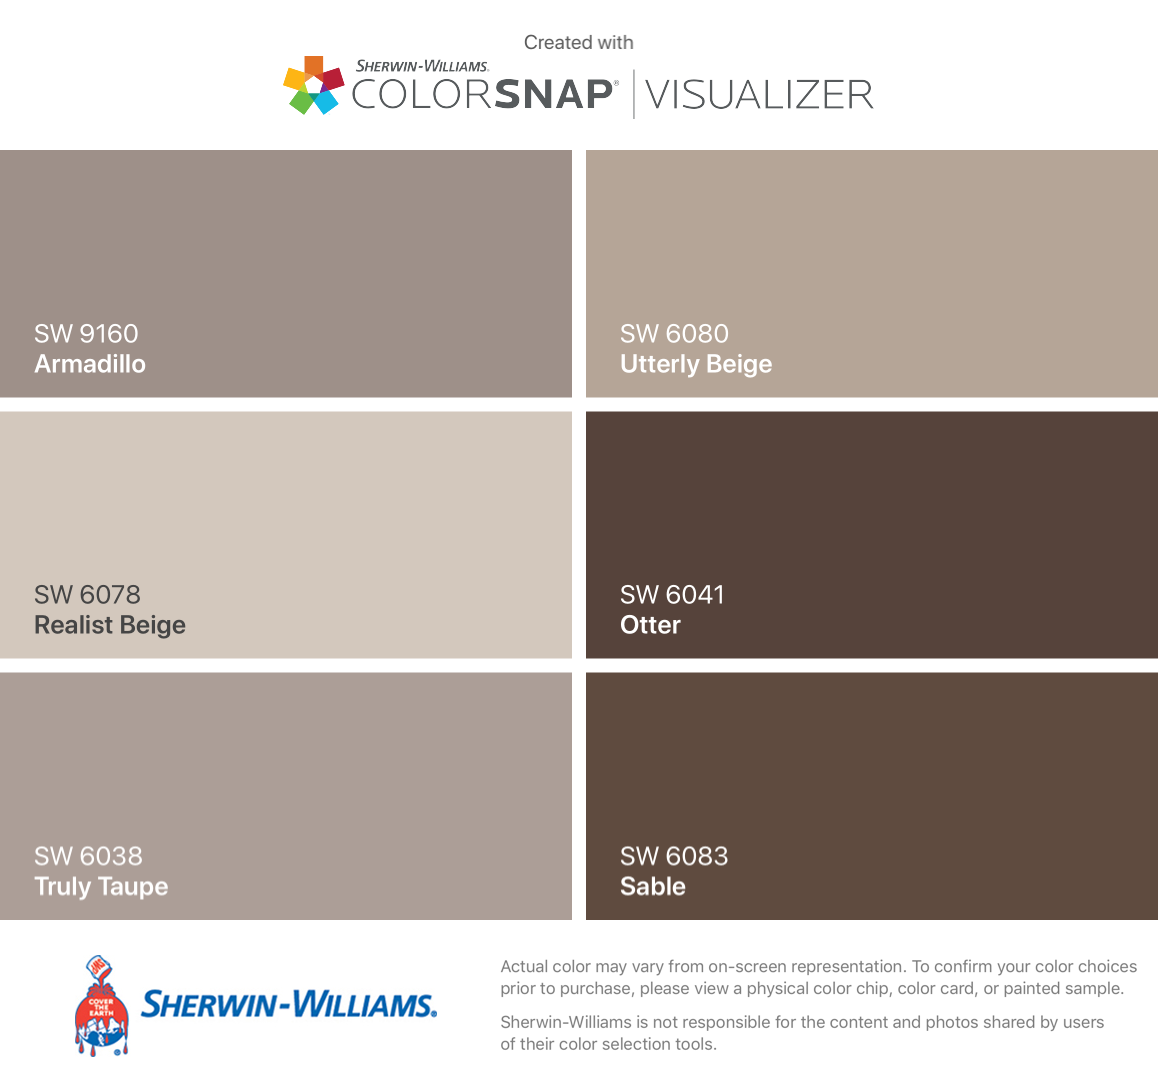 I Found These Colors With Colorsnap Visualizer For Iphone By Sherwin Williams Armadillo Sw 9160 Realist Beige 6078 Truly Taupe 6038